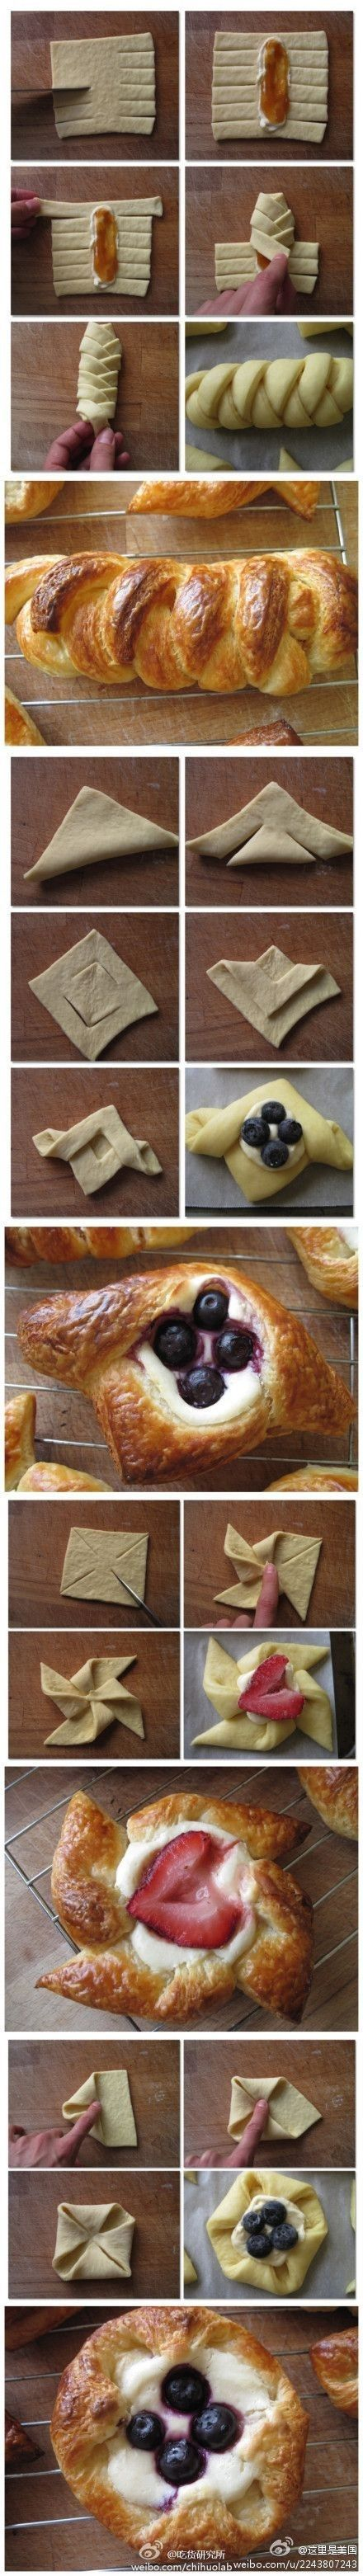 pastry folding 101 - It's not as hard as it looks